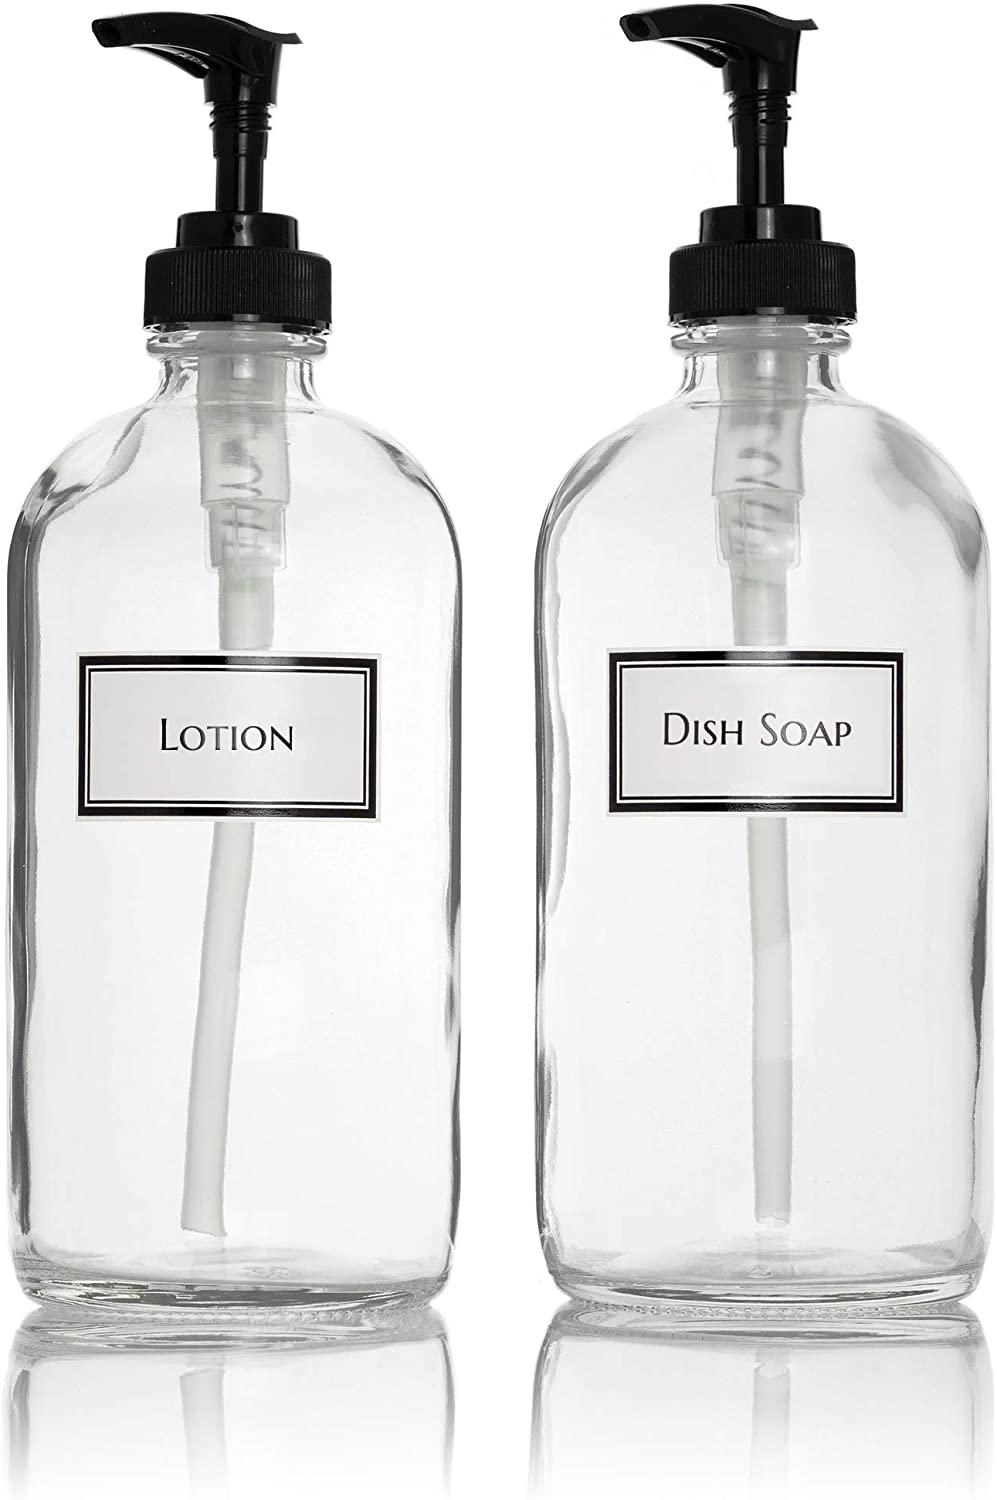 Ceramic Printed Glass Dish Soap and Lotion Dispenser Set with Black Pumps, 16 oz, Clear